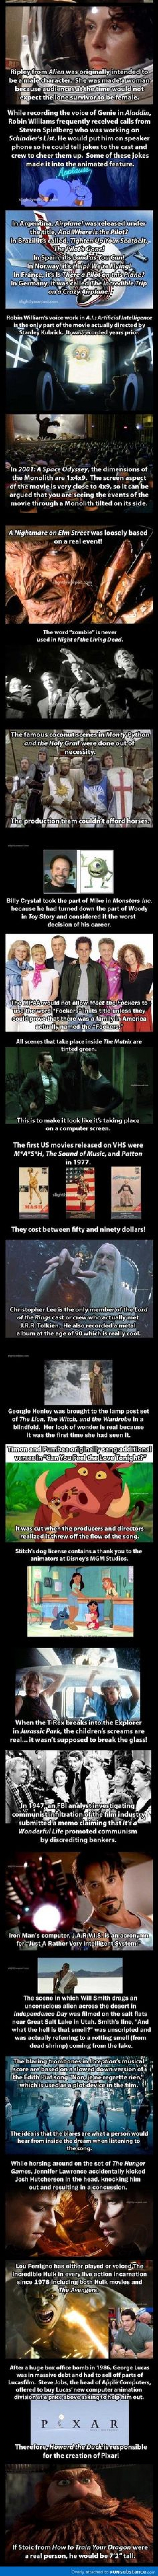 24 Awesome Movie Facts That You Need To Know